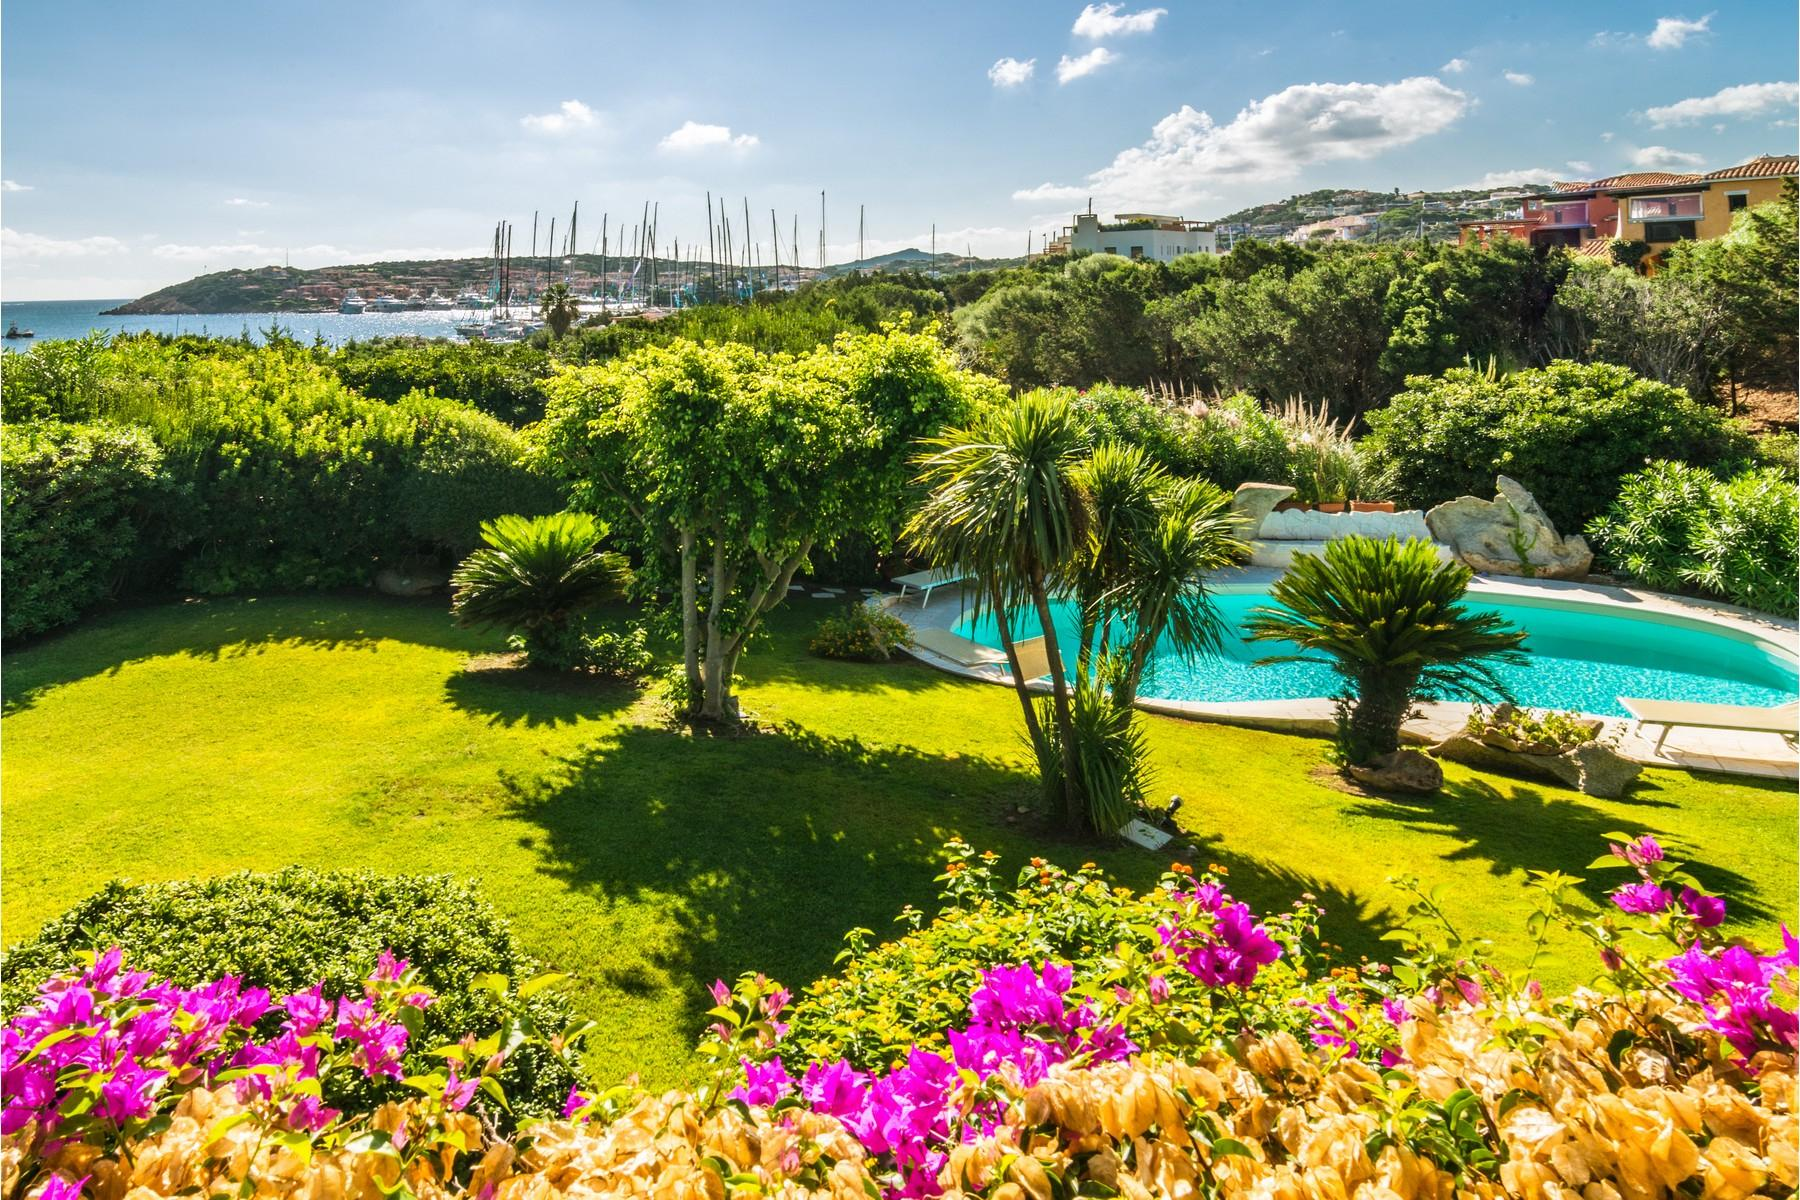 Porto Cervo Marina - Magnificient Villa with private pool - 3